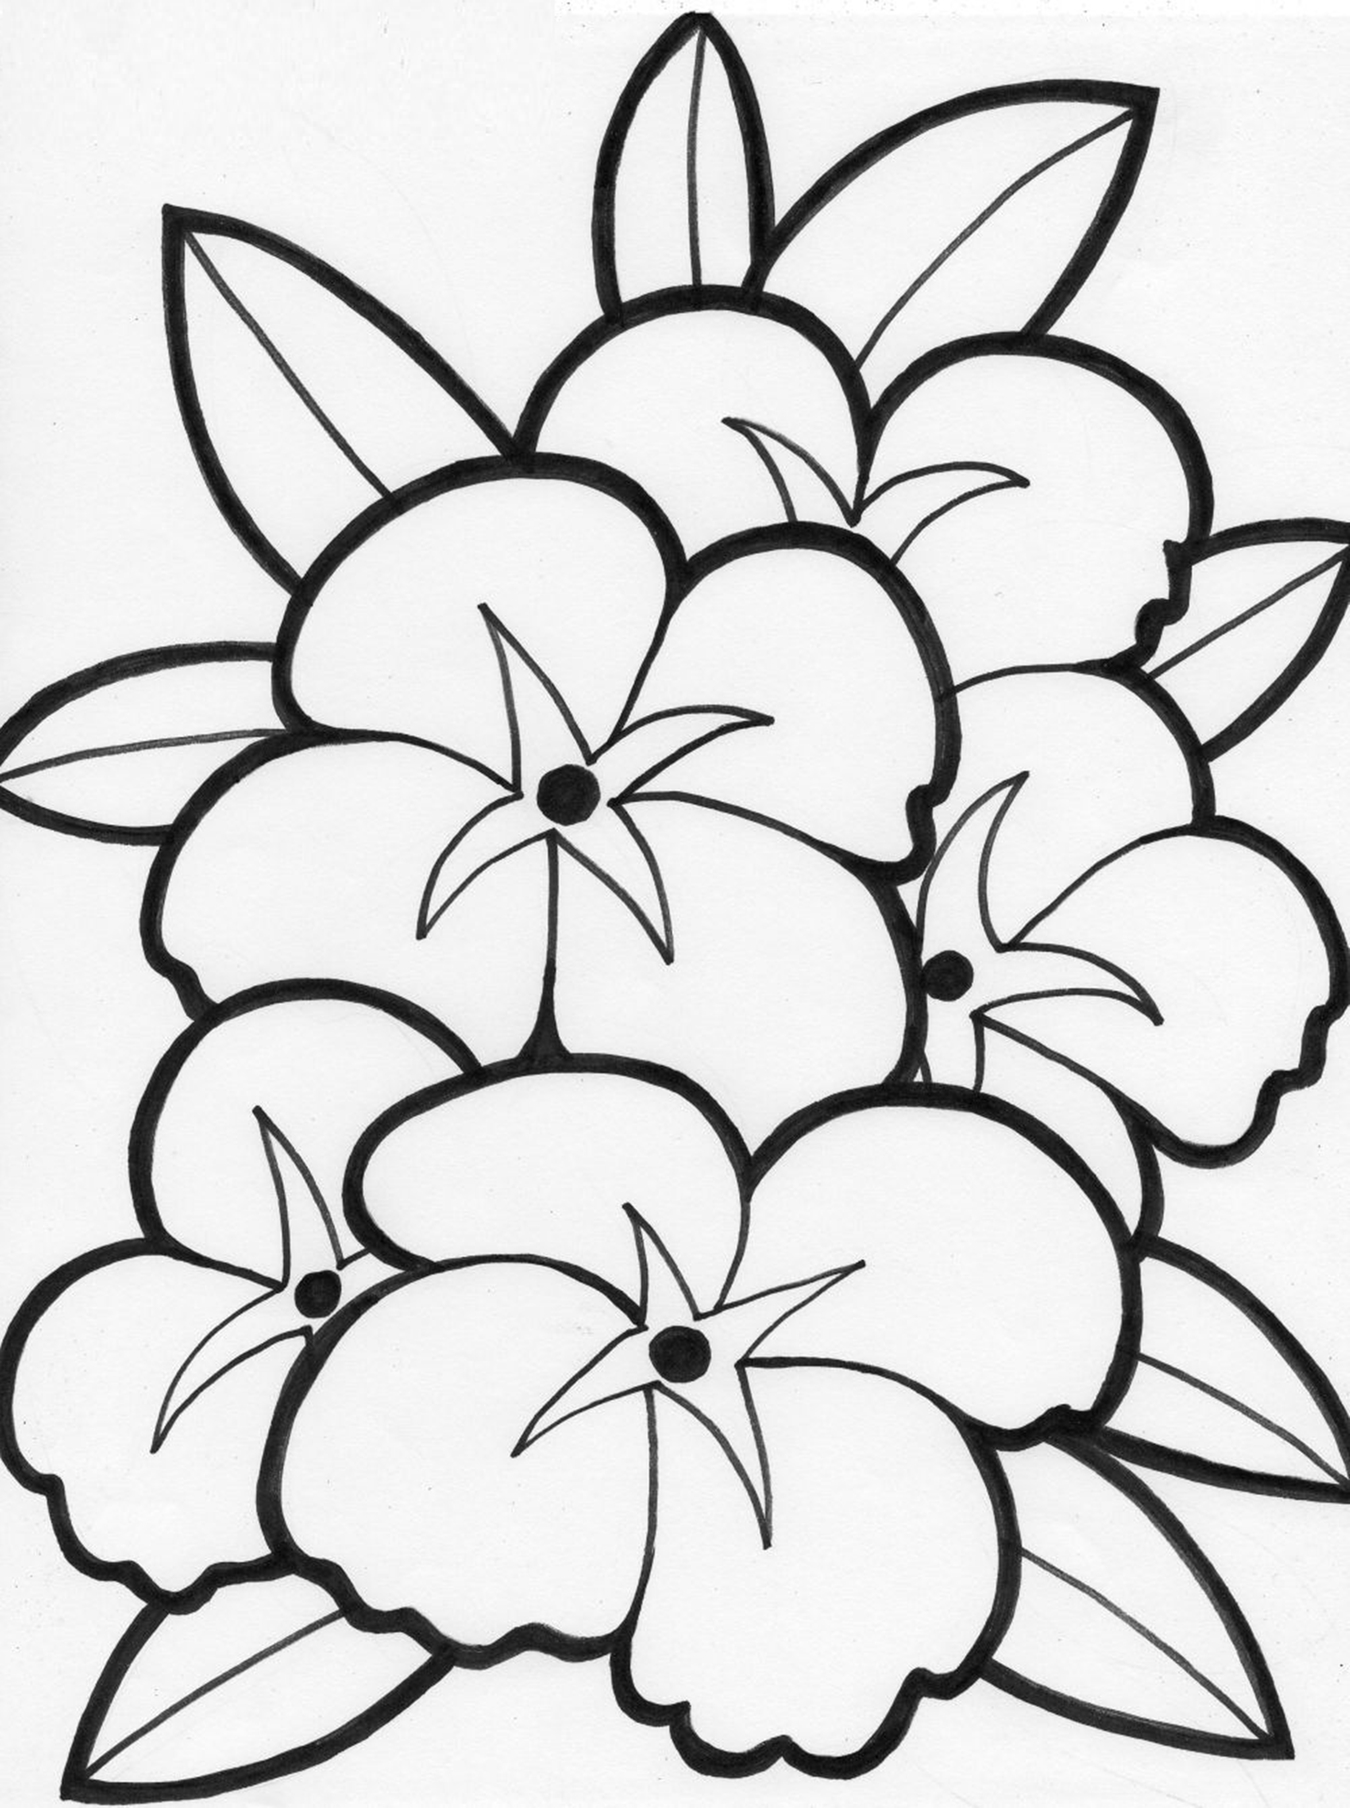 flowers coloring pages for free printable flower coloring pages for best coloring - Flowers Coloring Pages